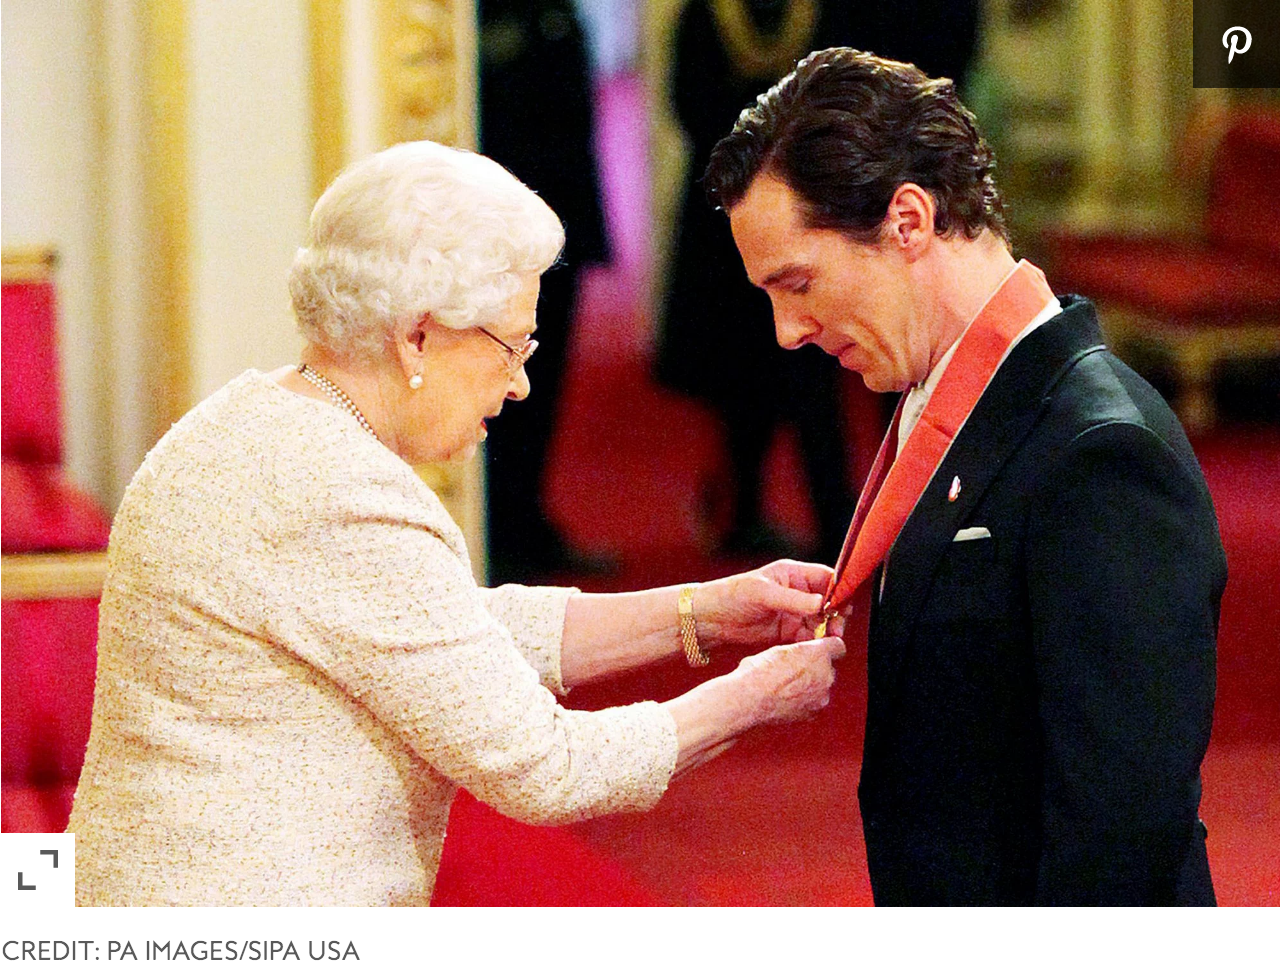 Benedict Cumberbatch Honored by Queen Elizabeth with CBE